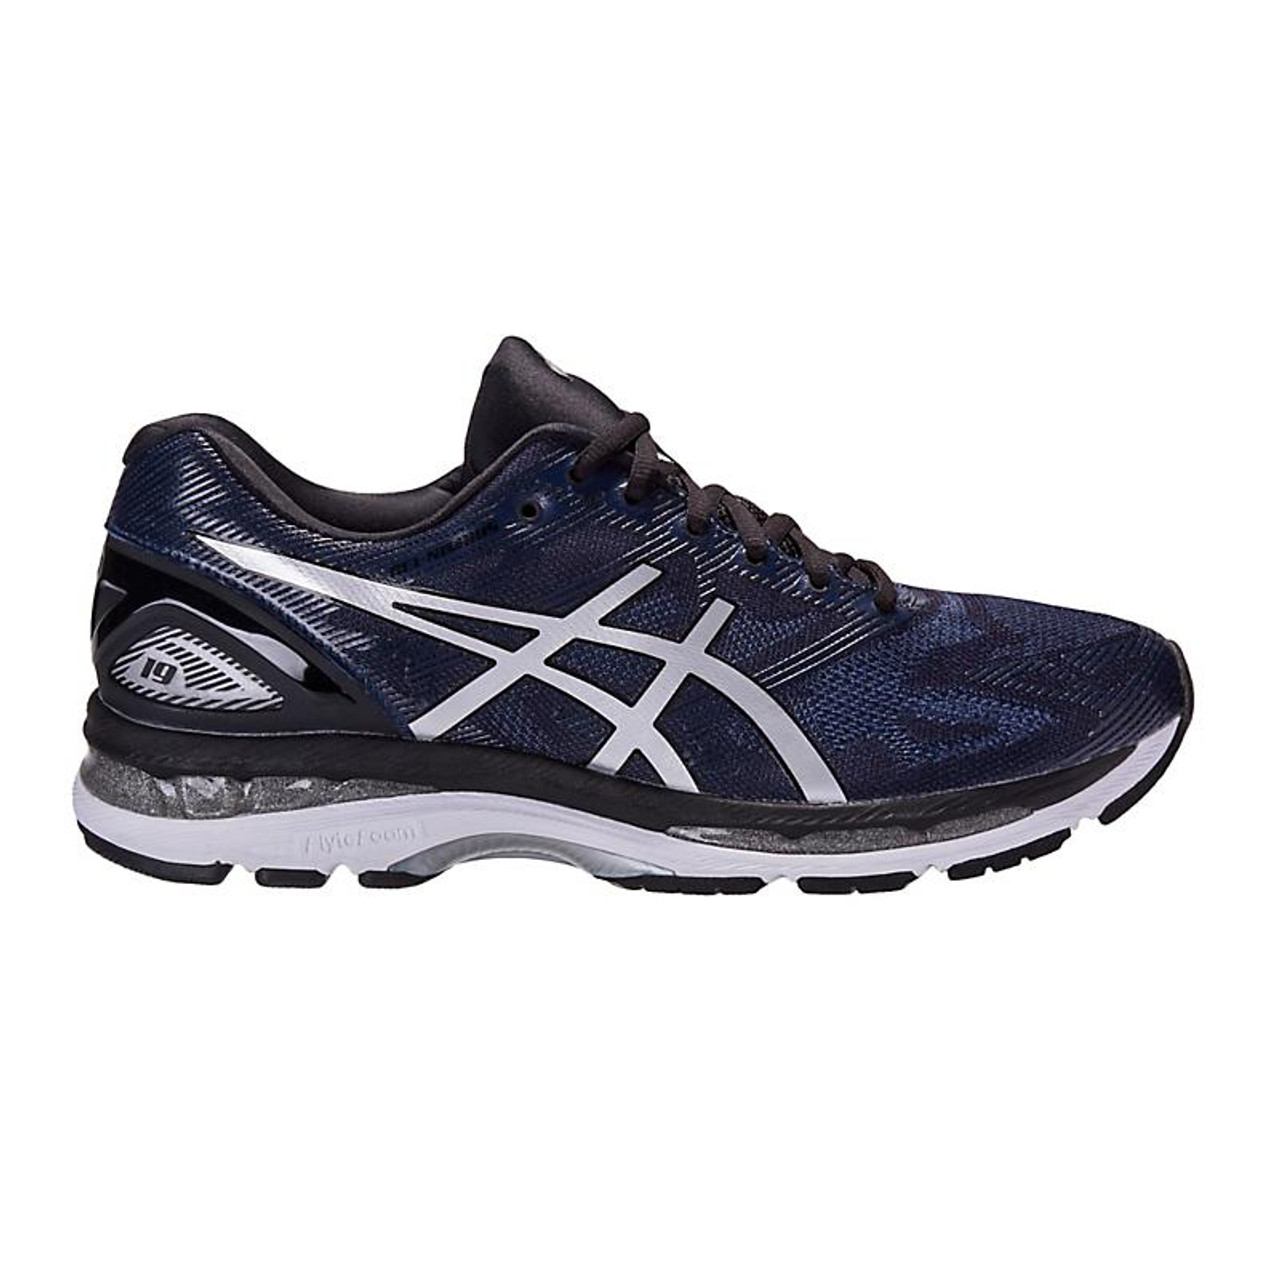 new style 468c2 a9611 Men's ASICS GEL-Nimbus 19 Exclusive